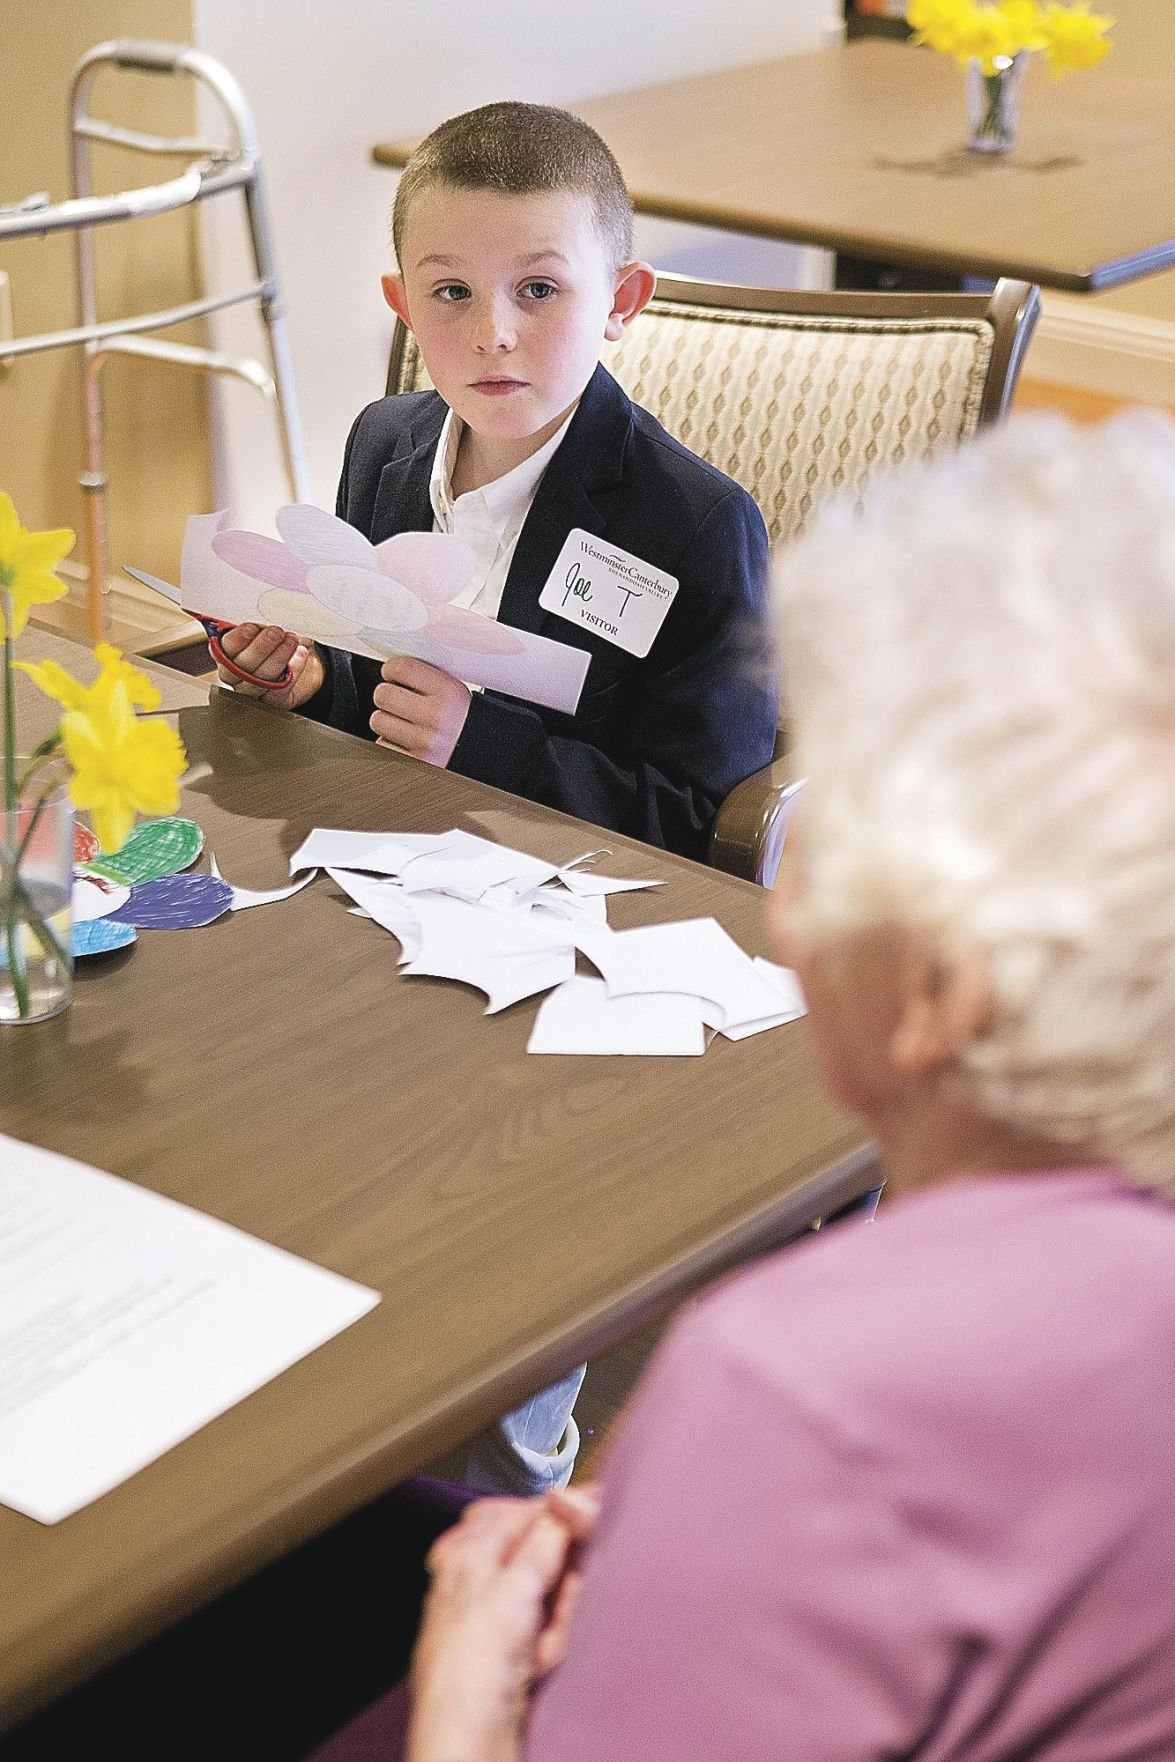 Interview a senior citizen essay